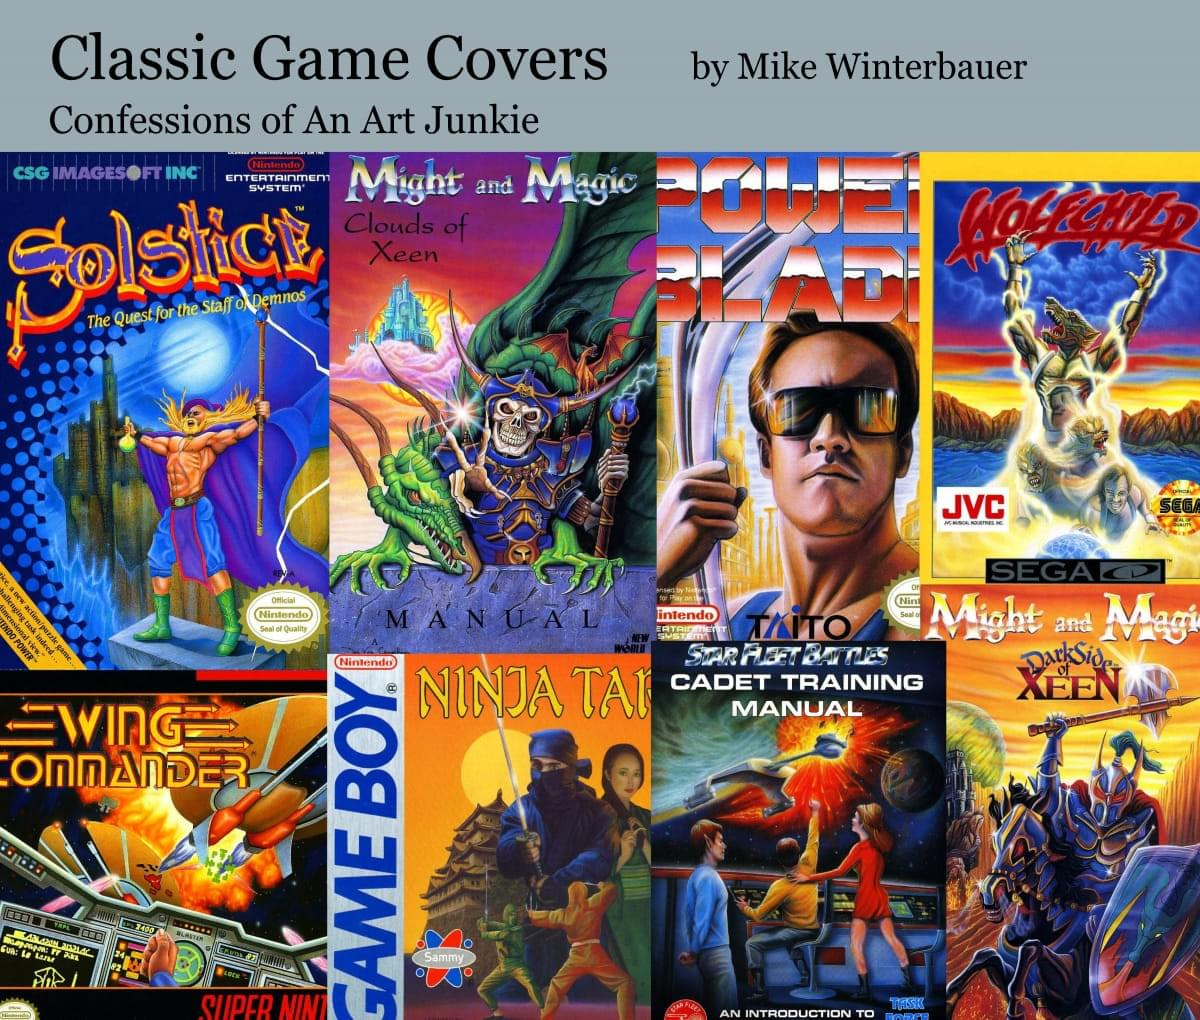 Free Classic Game Covers eBook!